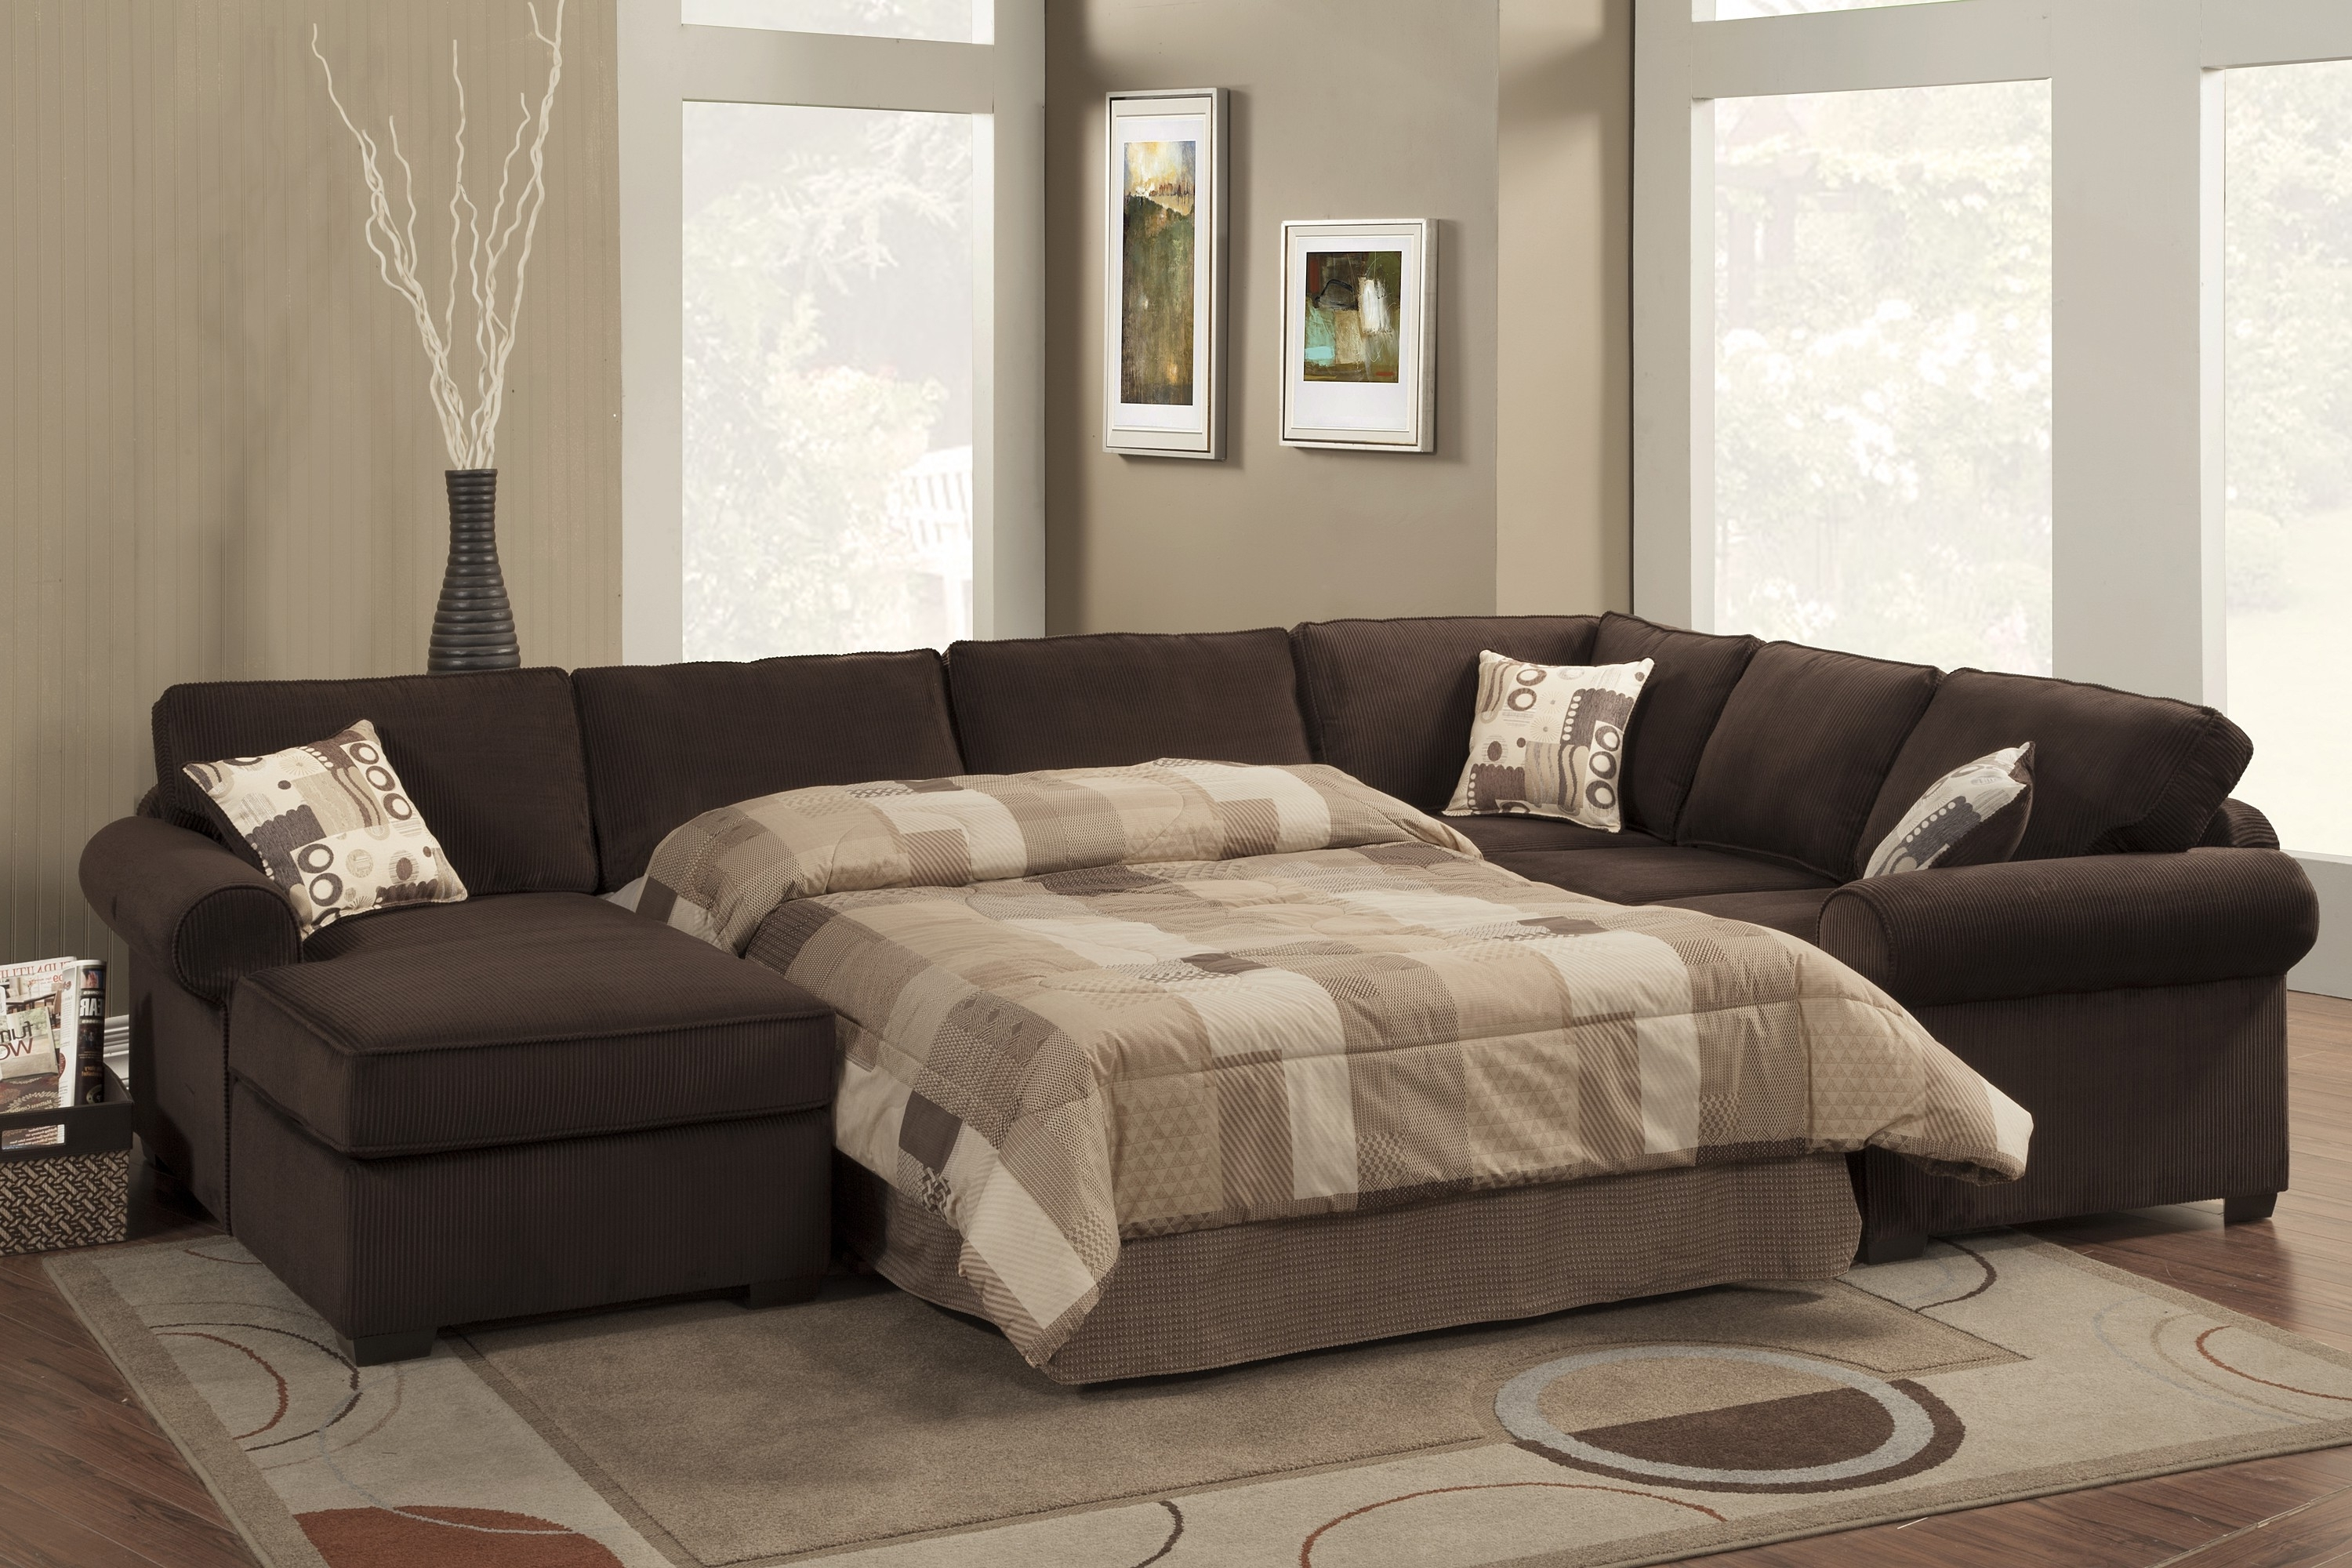 Sectional Sofa With Oversized Ottoman - Frasesdeconquista.com -